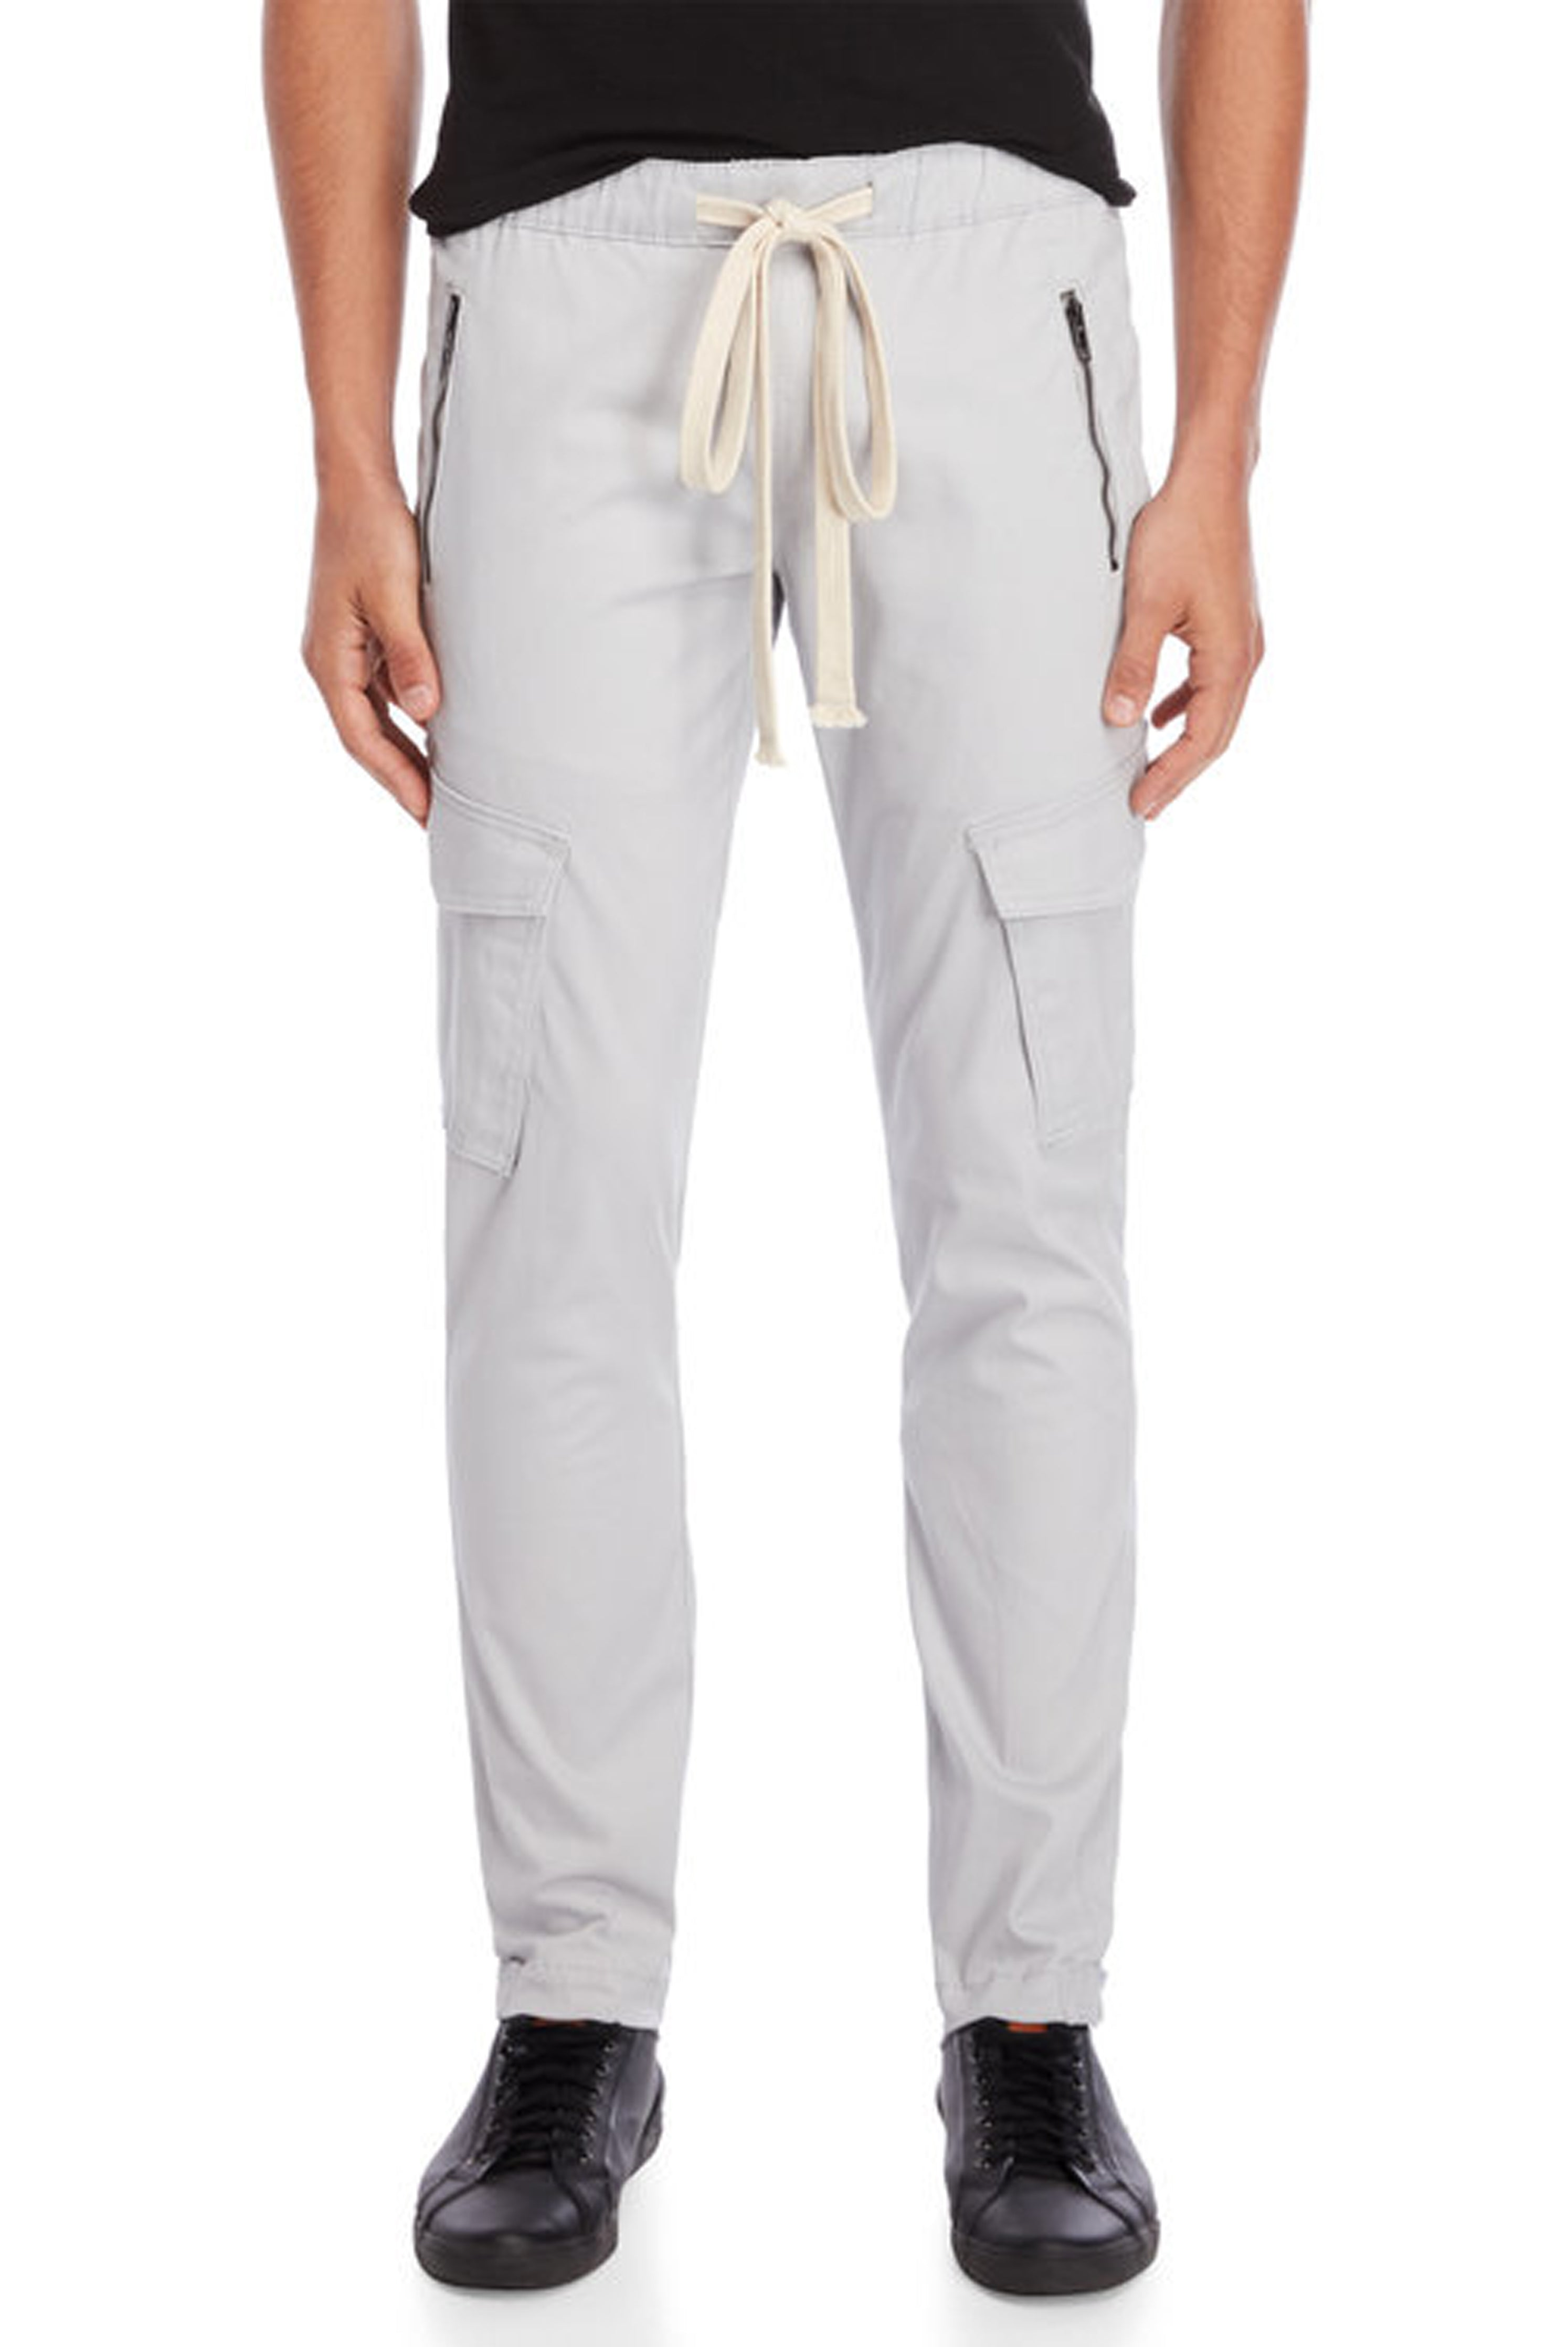 Grey Cargo Snap Pant - American Stitch